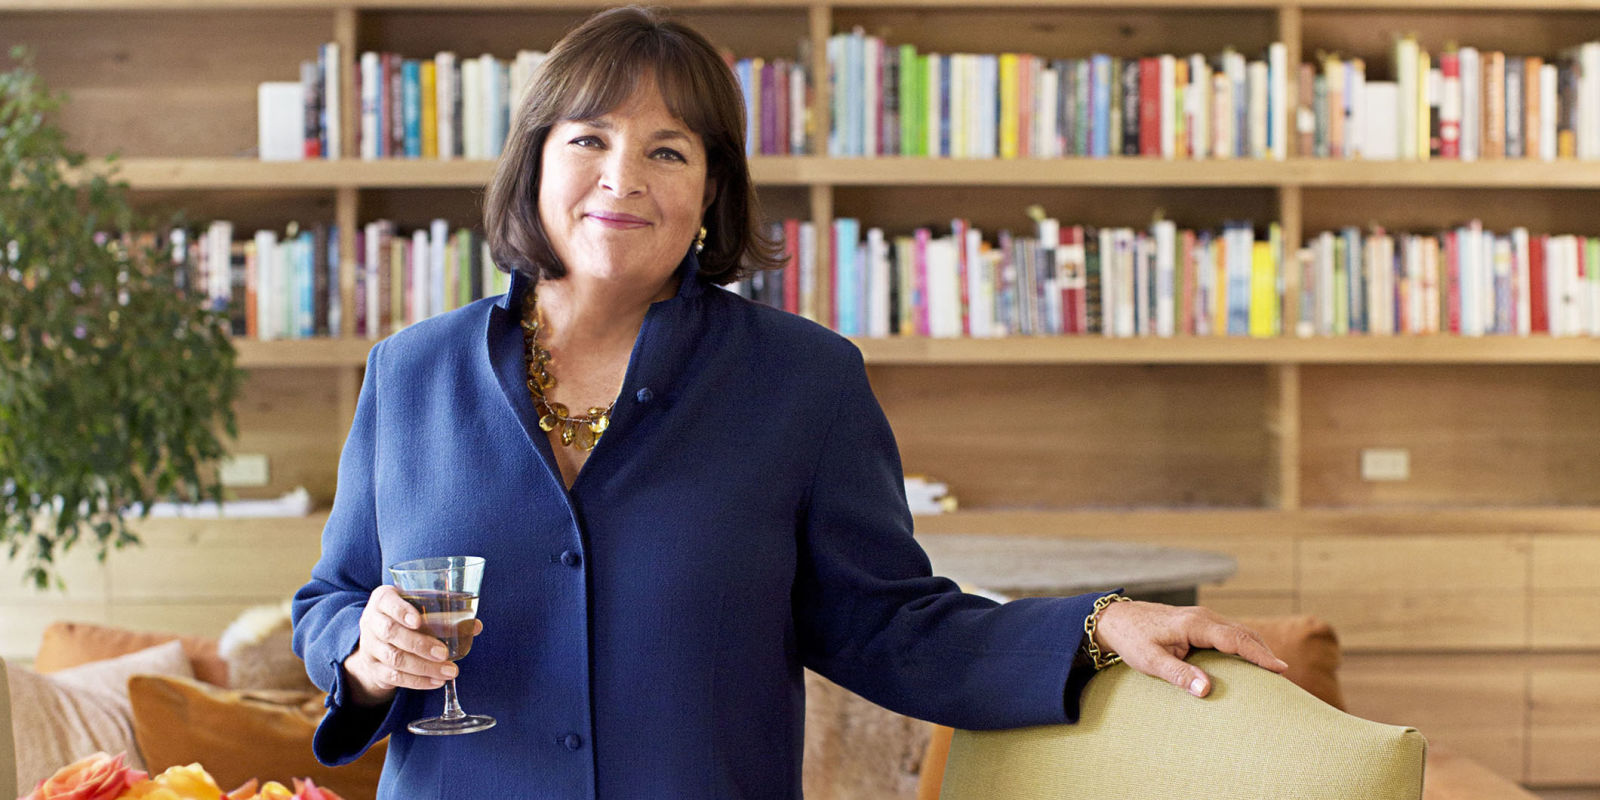 Ina Garten Fascinating 13 Things You Never Knew About Ina Garten  Ina Garten Facts Inspiration